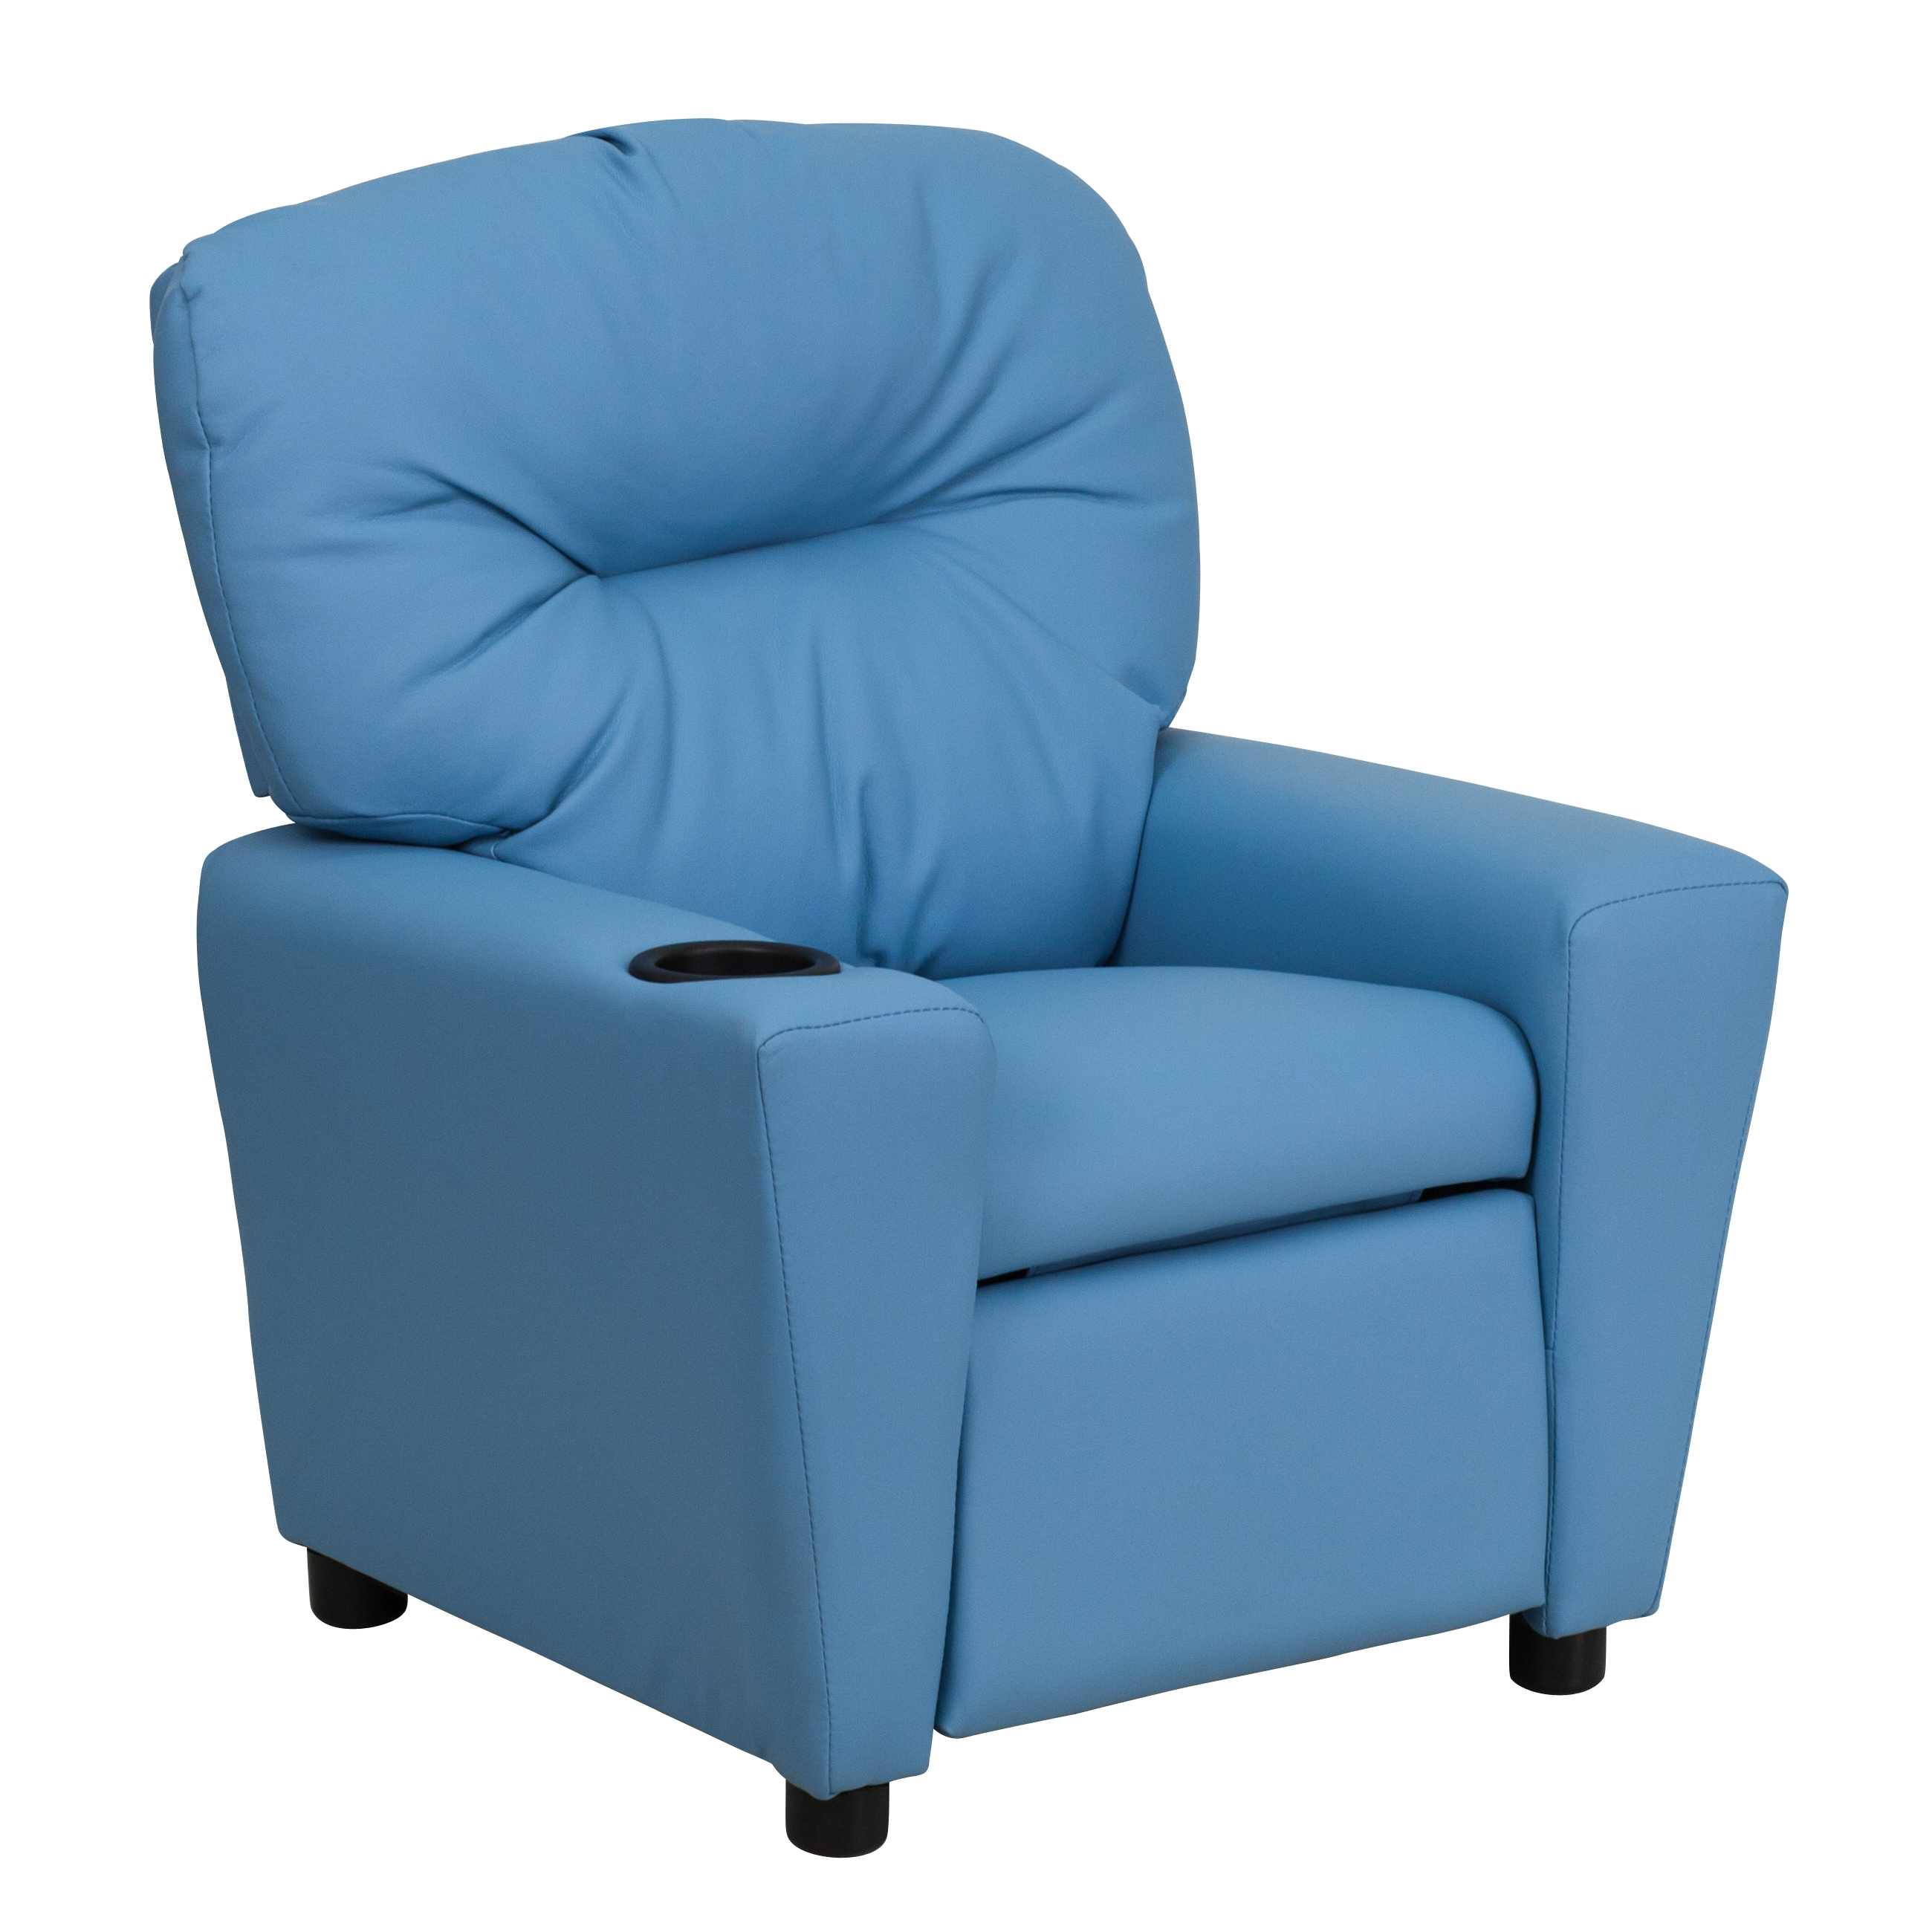 Children's Lounge Chair Flash Furniture Contemporary Light Blue Vinyl Kids